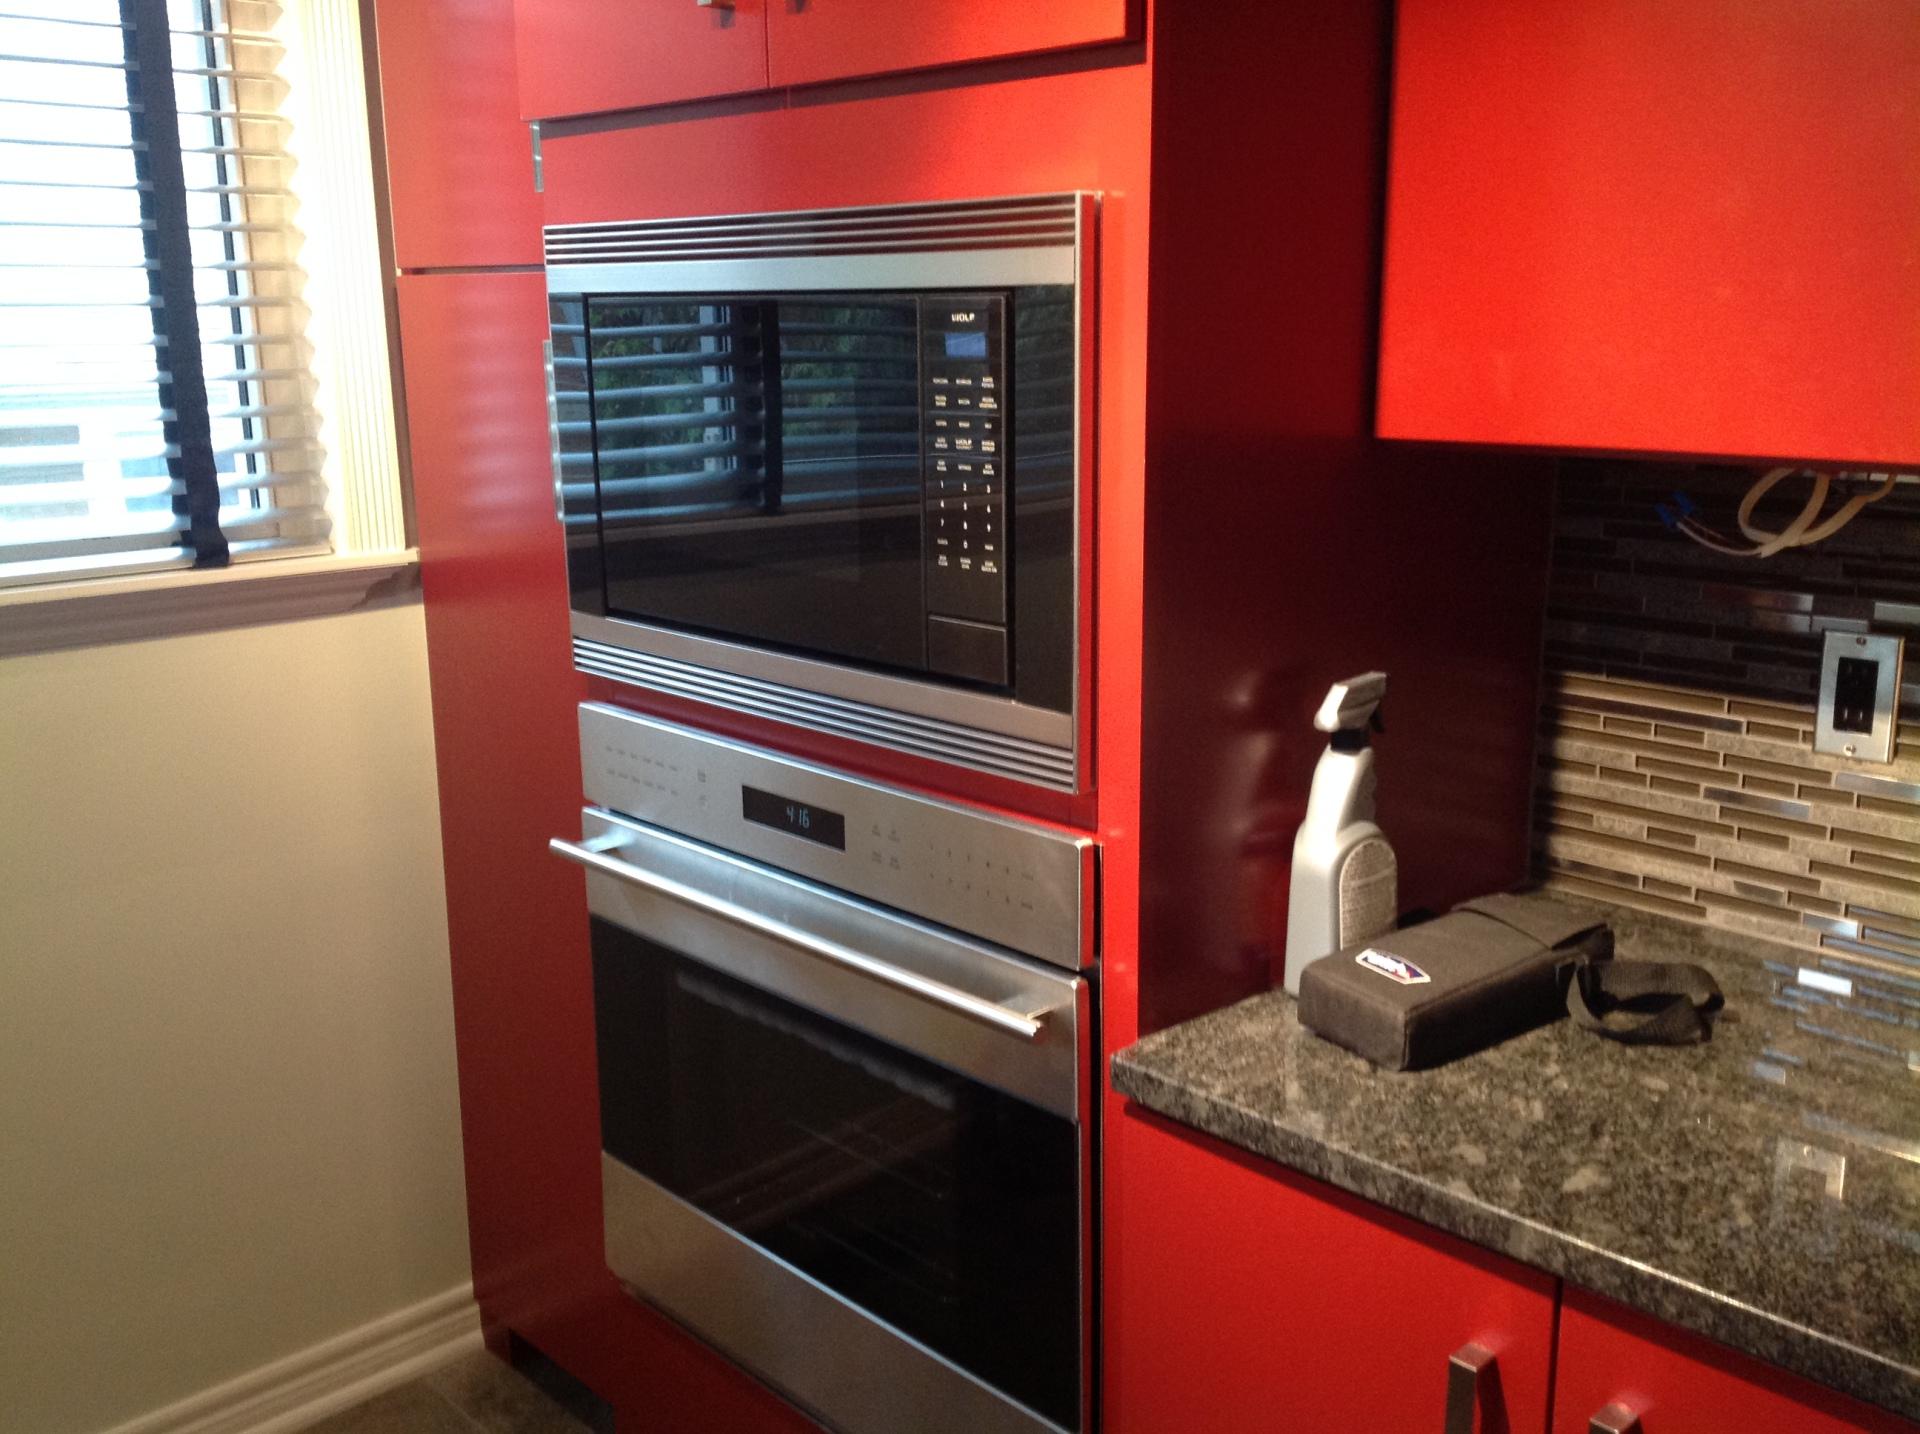 Kitchen Appliances inset in cabinetry